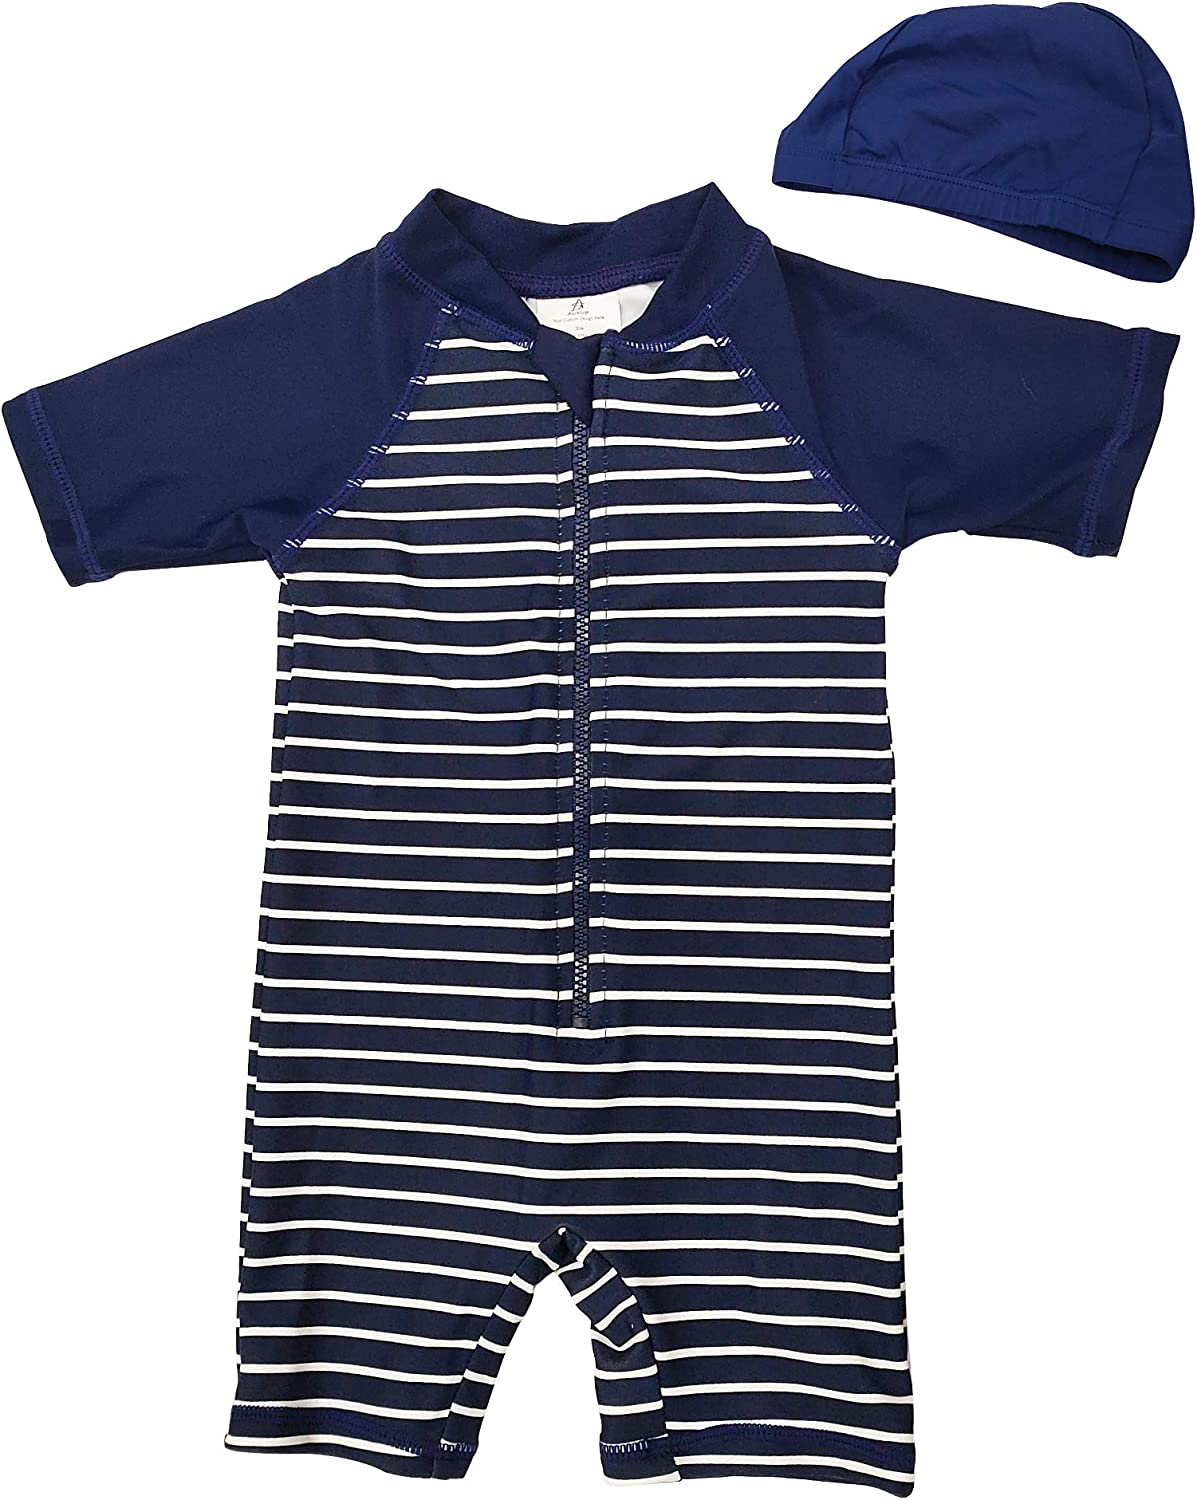 Aschlop Baby Boys S Sunsuit One-P Outstanding UPF50+ Protection Infant Max 88% OFF Sun